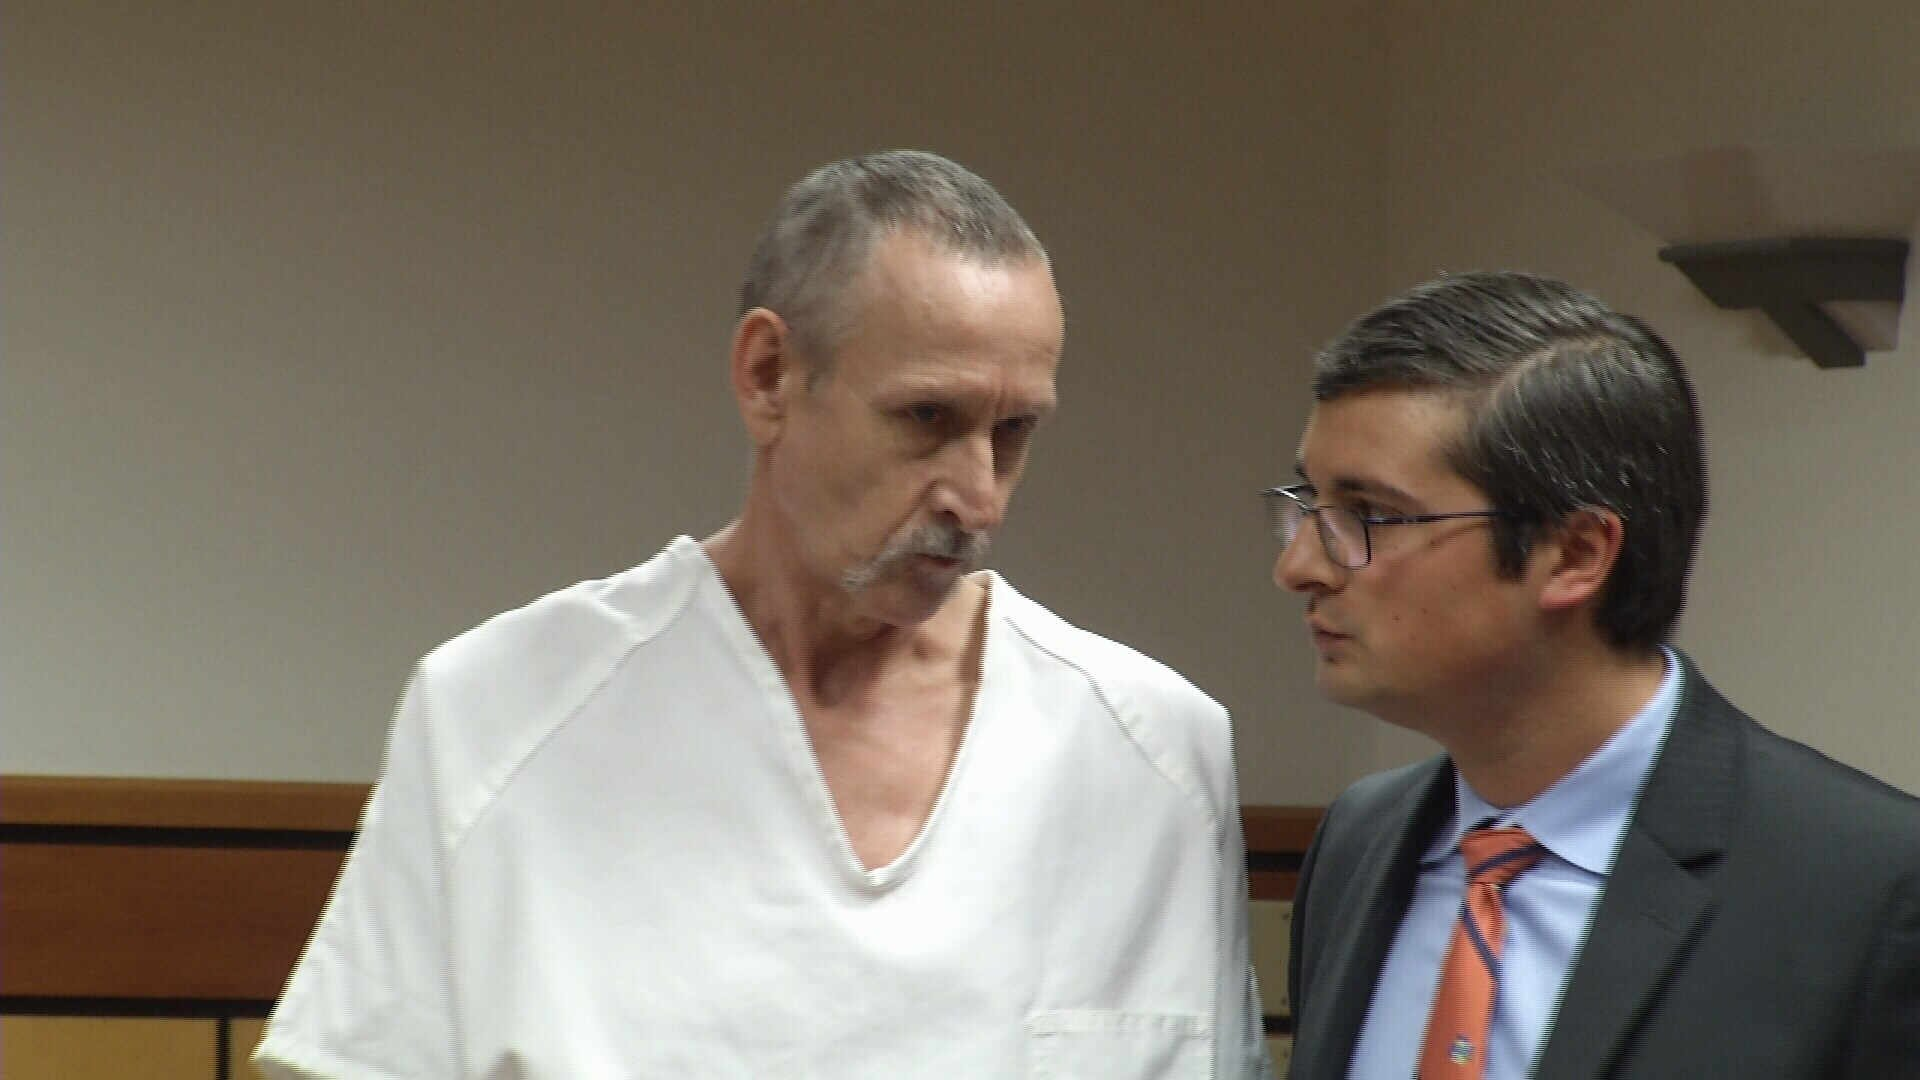 Bauer was convicted of mitigated deliberate homicide (MTN News photo)